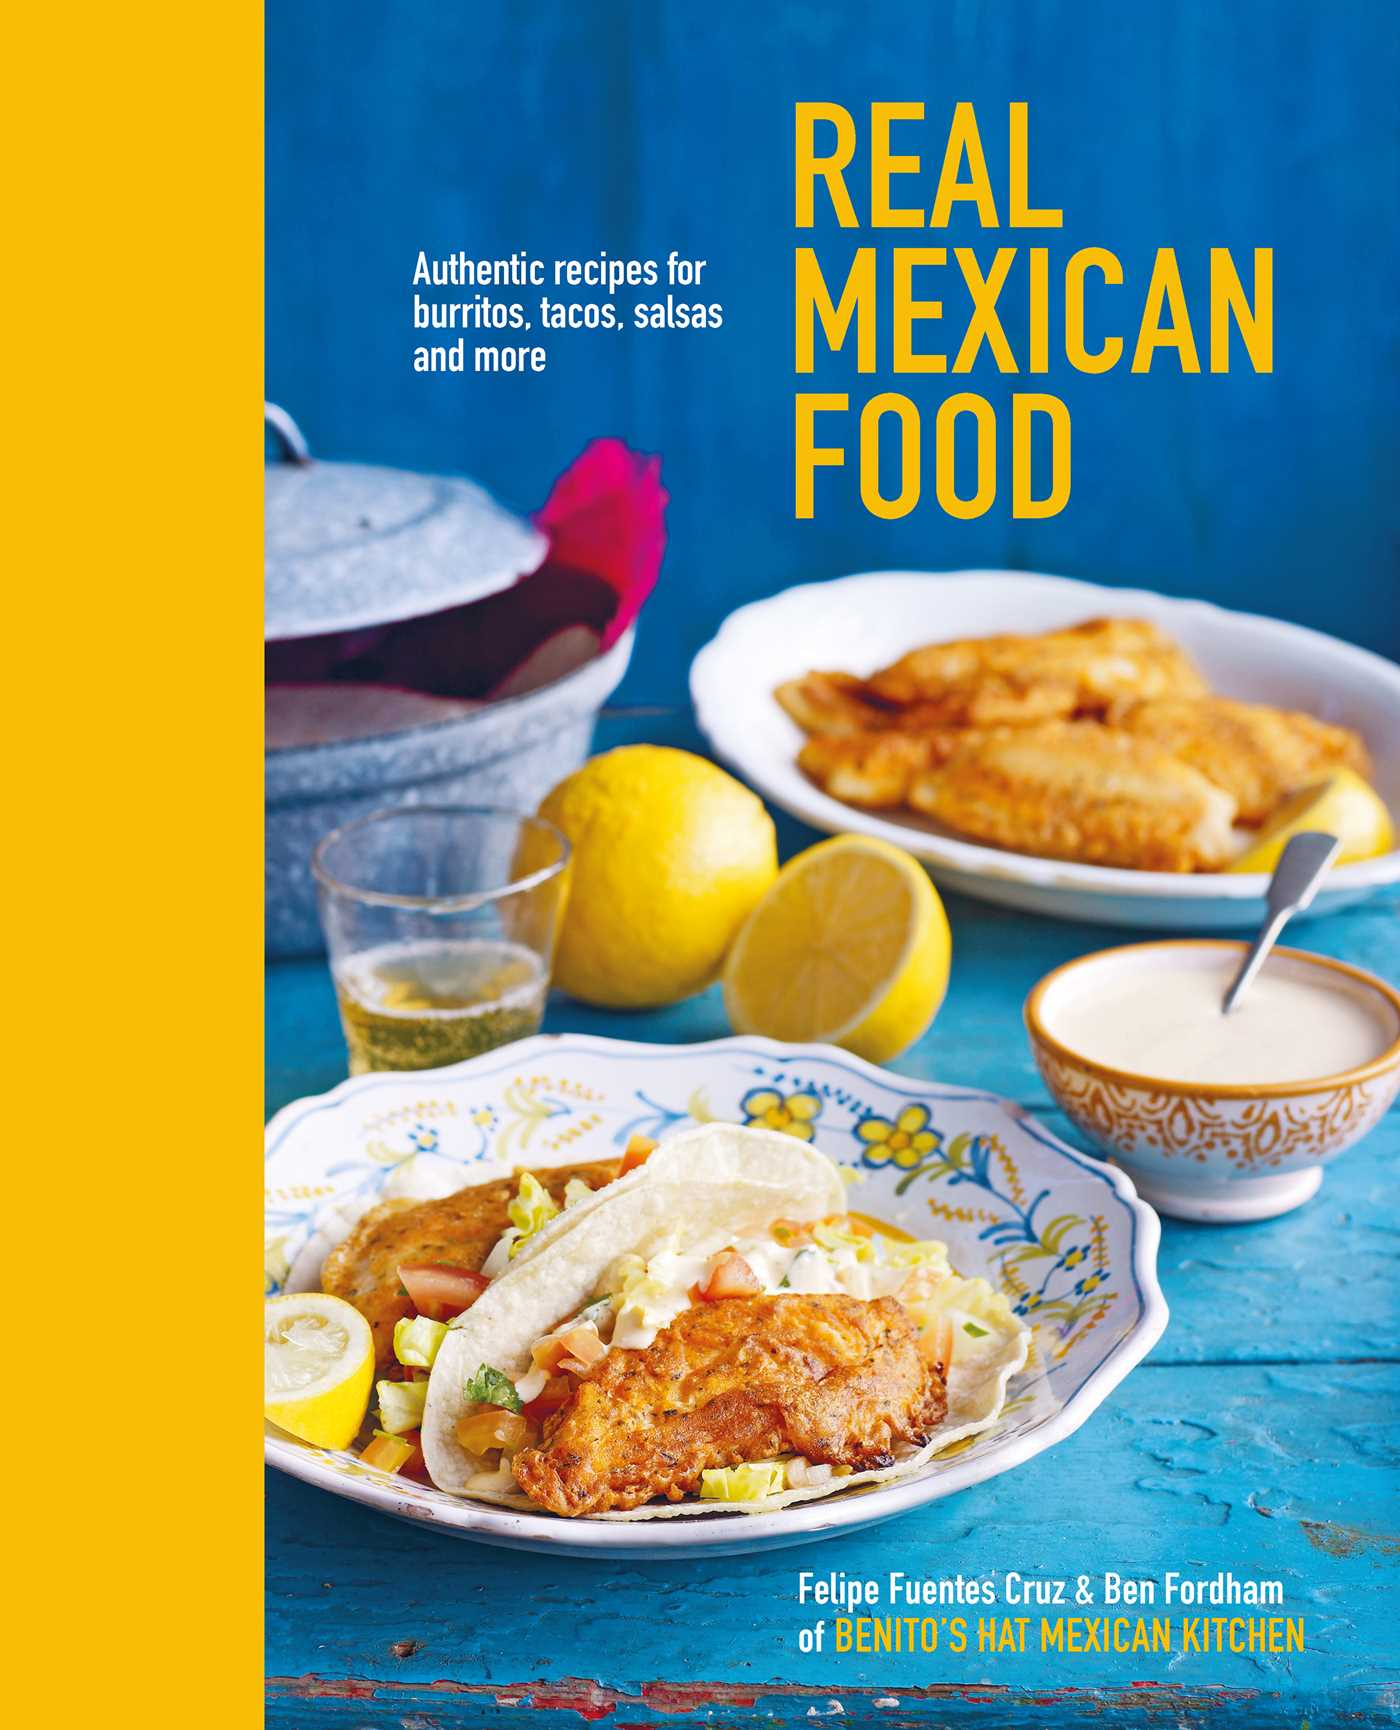 Real mexican food book by ben fordham felipe fuentes cruz real mexican food 9781849758192 hr forumfinder Image collections